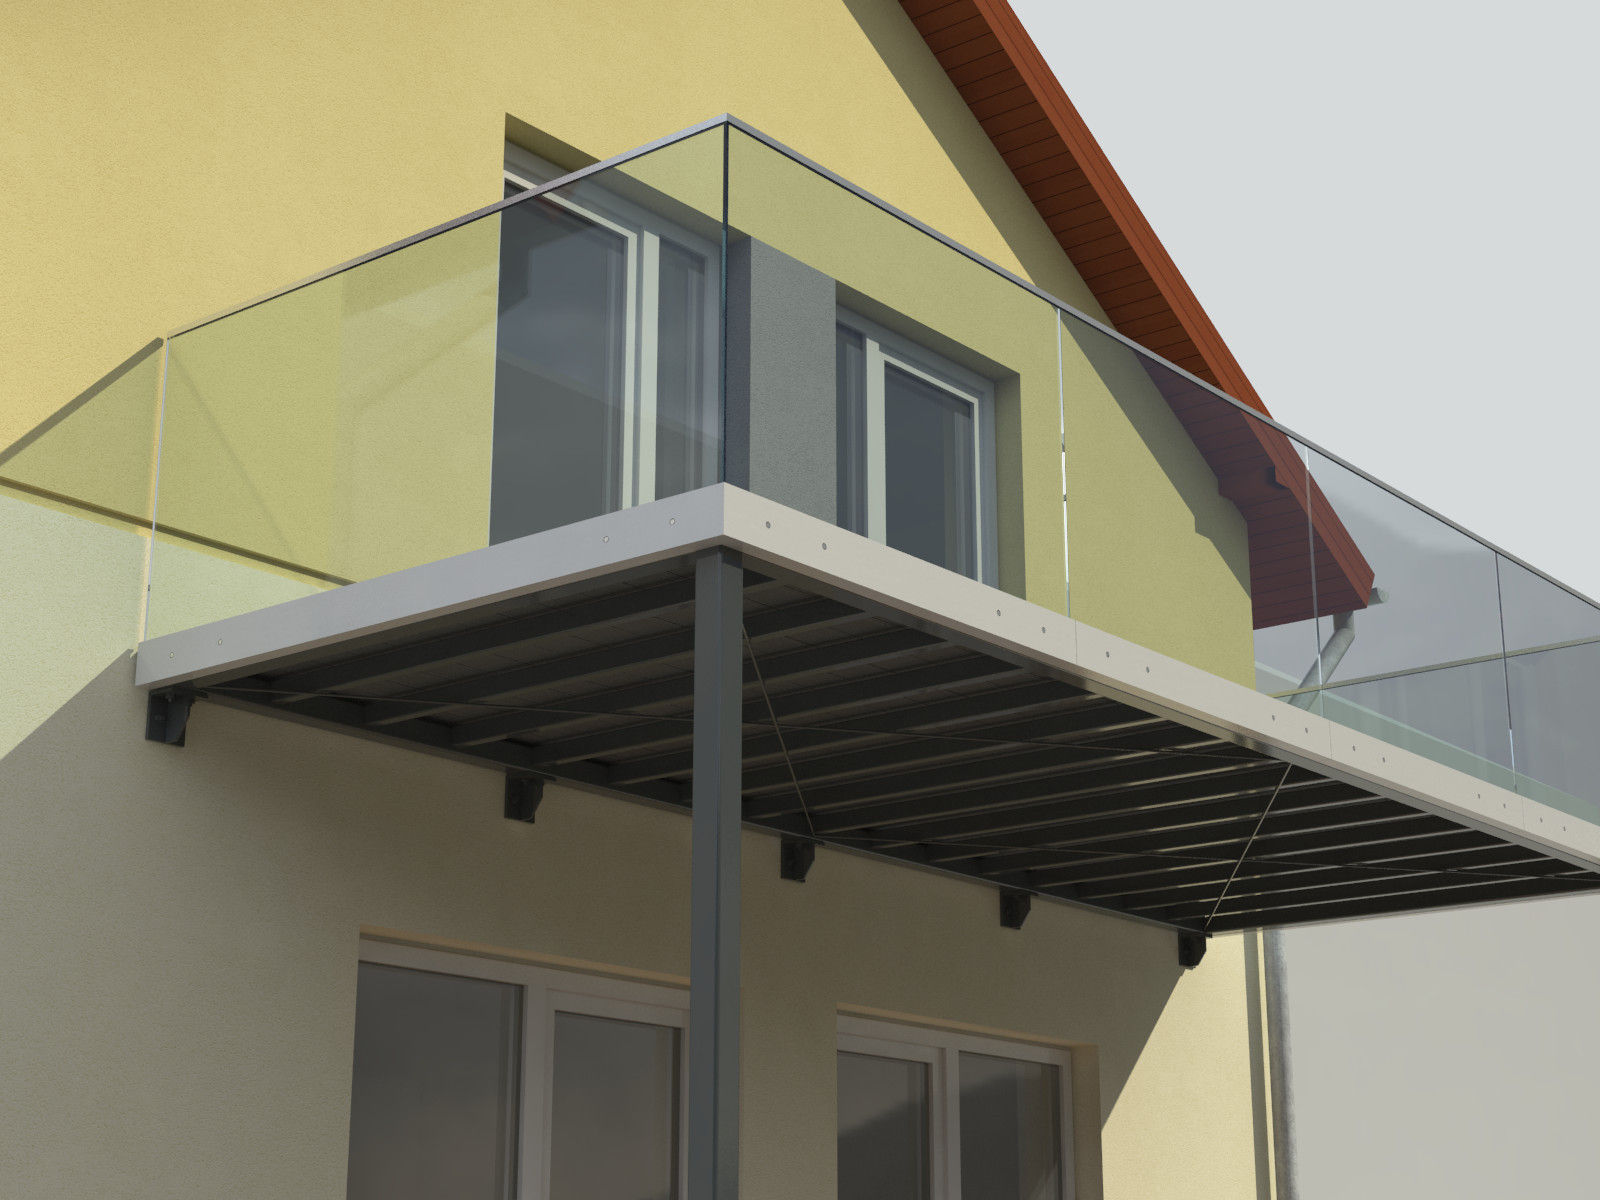 Balcony and railing 3d model obj 3ds lwo lw lws 3dm skp for Balcony models